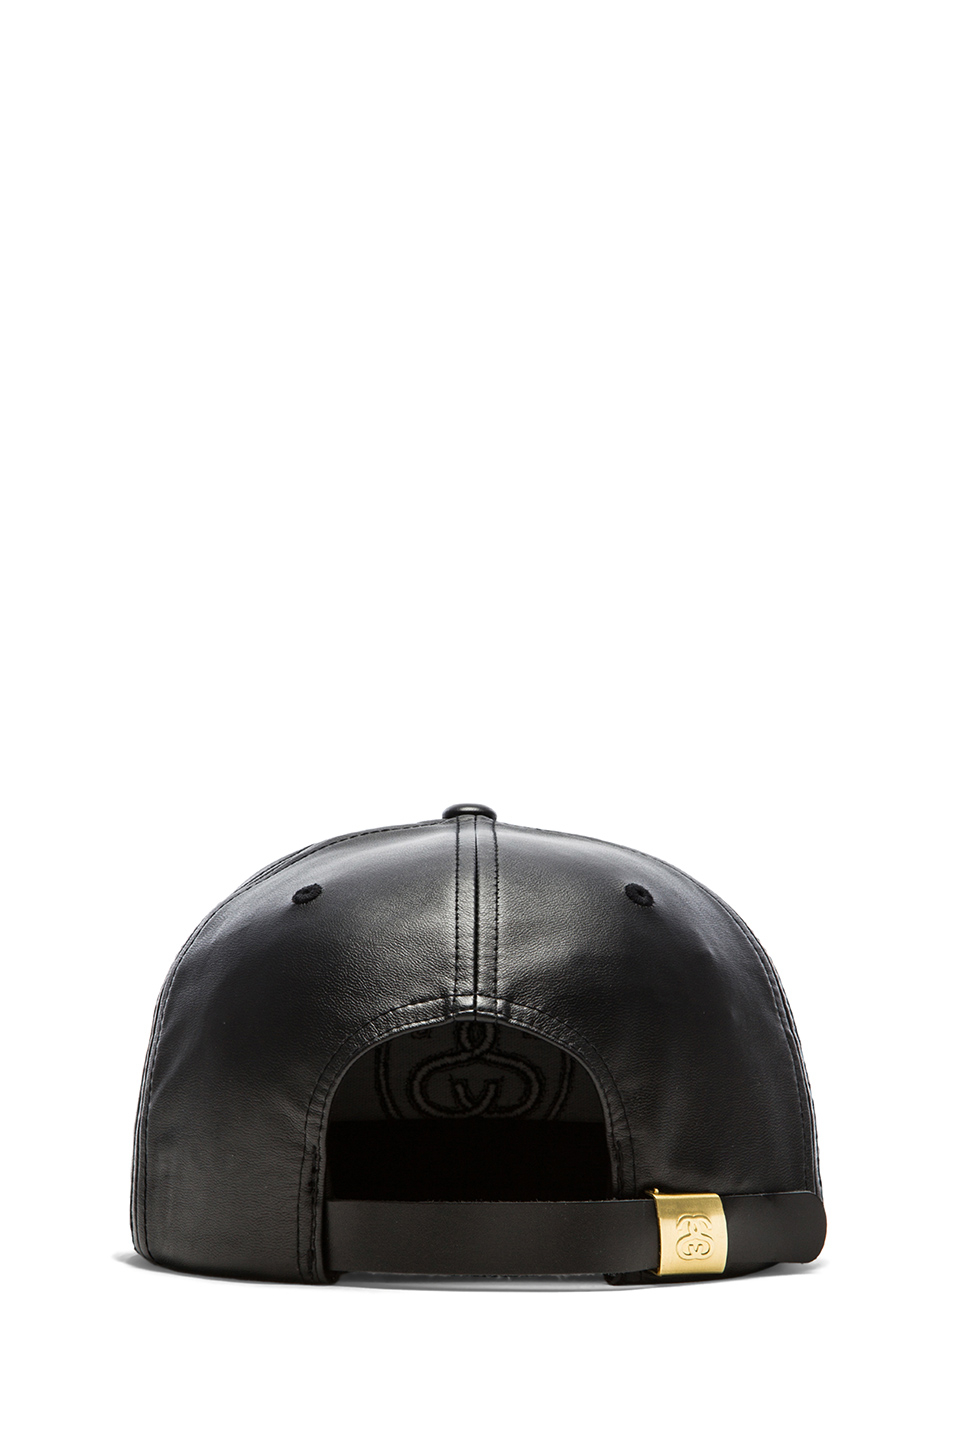 Lyst - Stussy 3D Ss Faux Leather Snapback in Black for Men 87c3d0ebb673